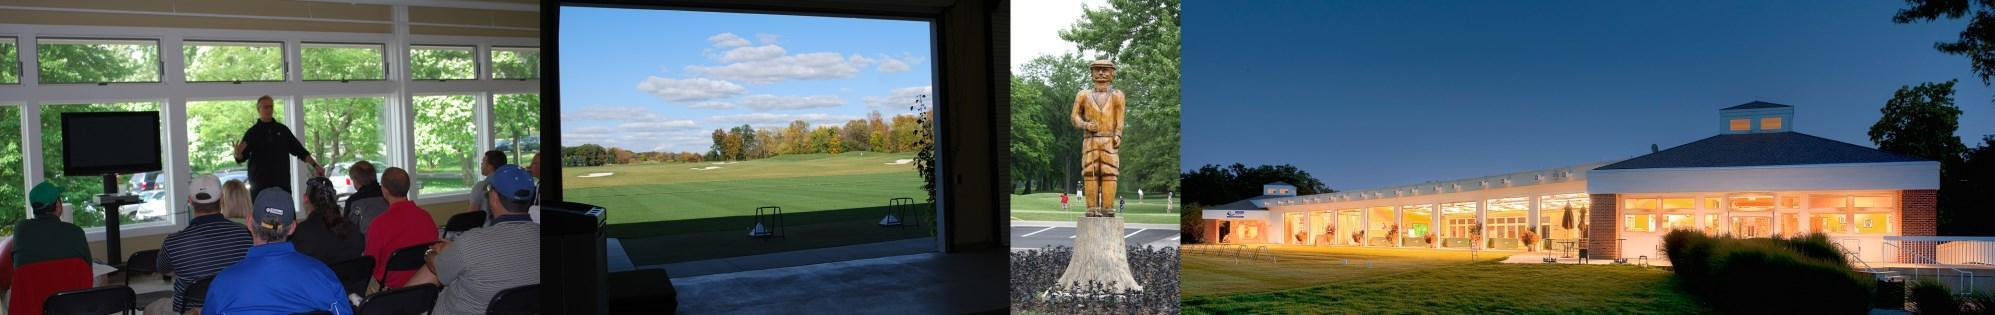 Cantigny Golf Academy website header images 1995 x 315 reduced size2